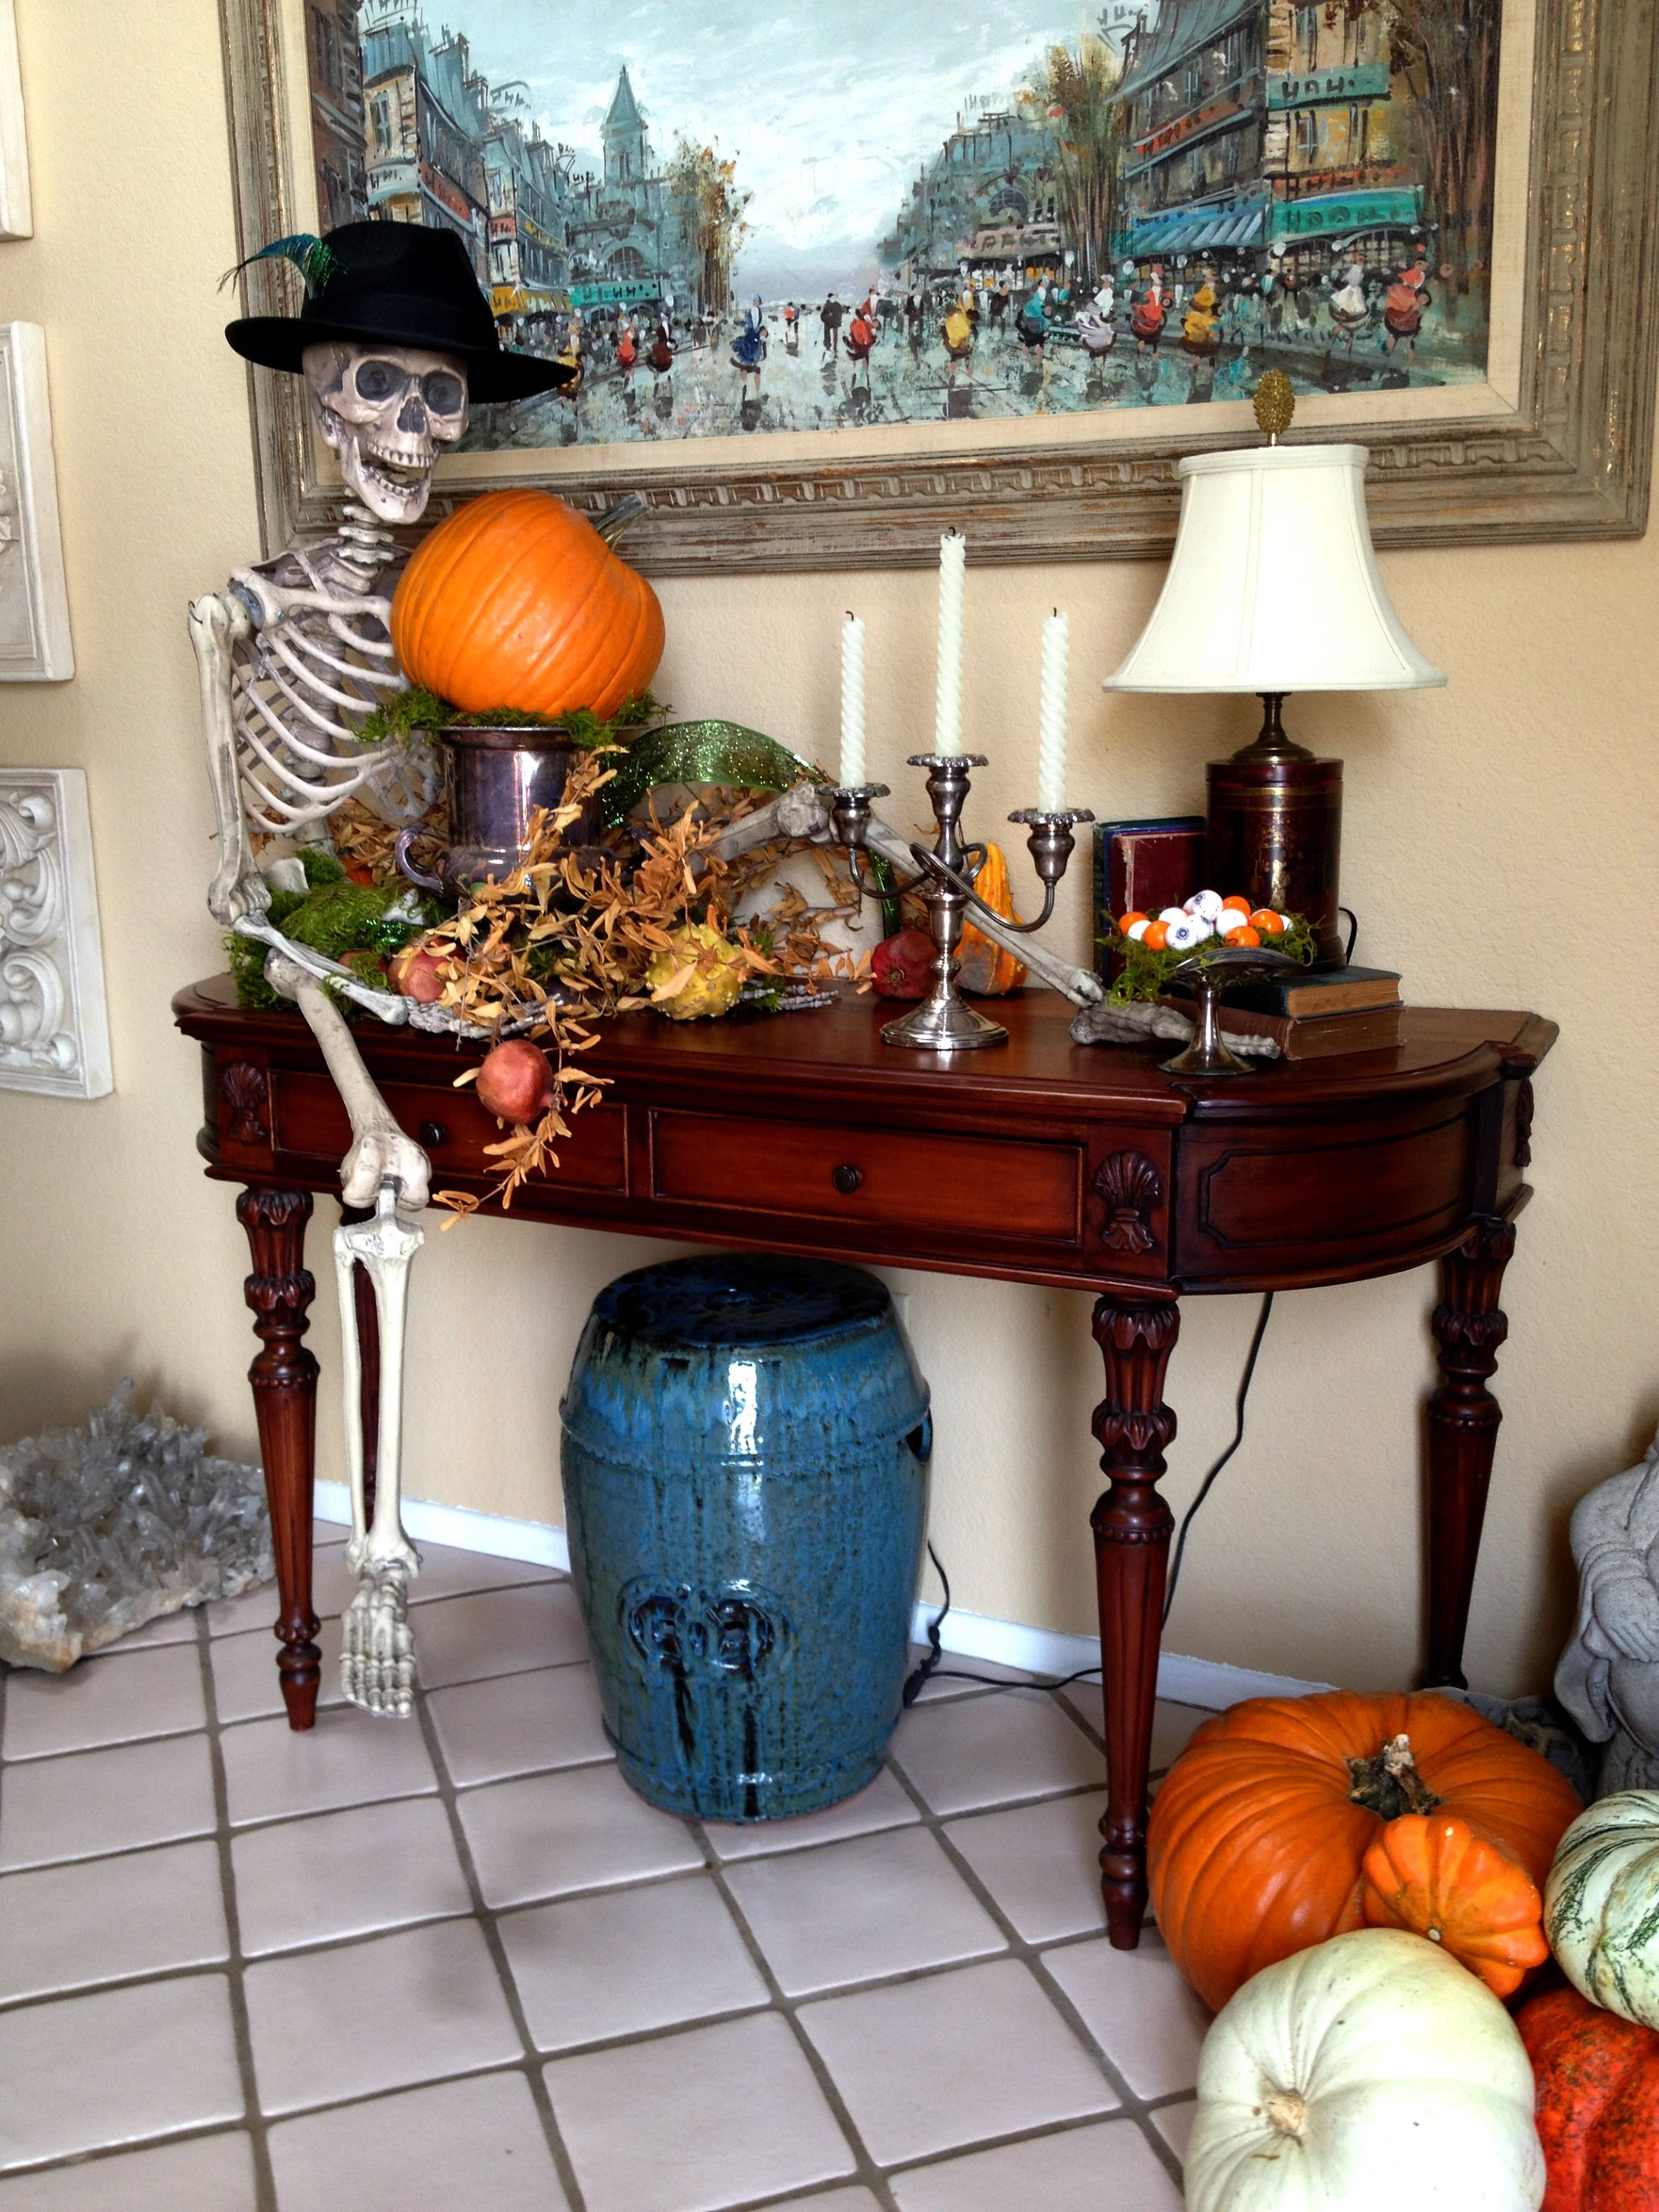 http://ridingsdesigns.webs.com/  #halloween #spooky #decorations #holiday #skeleton #pumpkins #homedecor